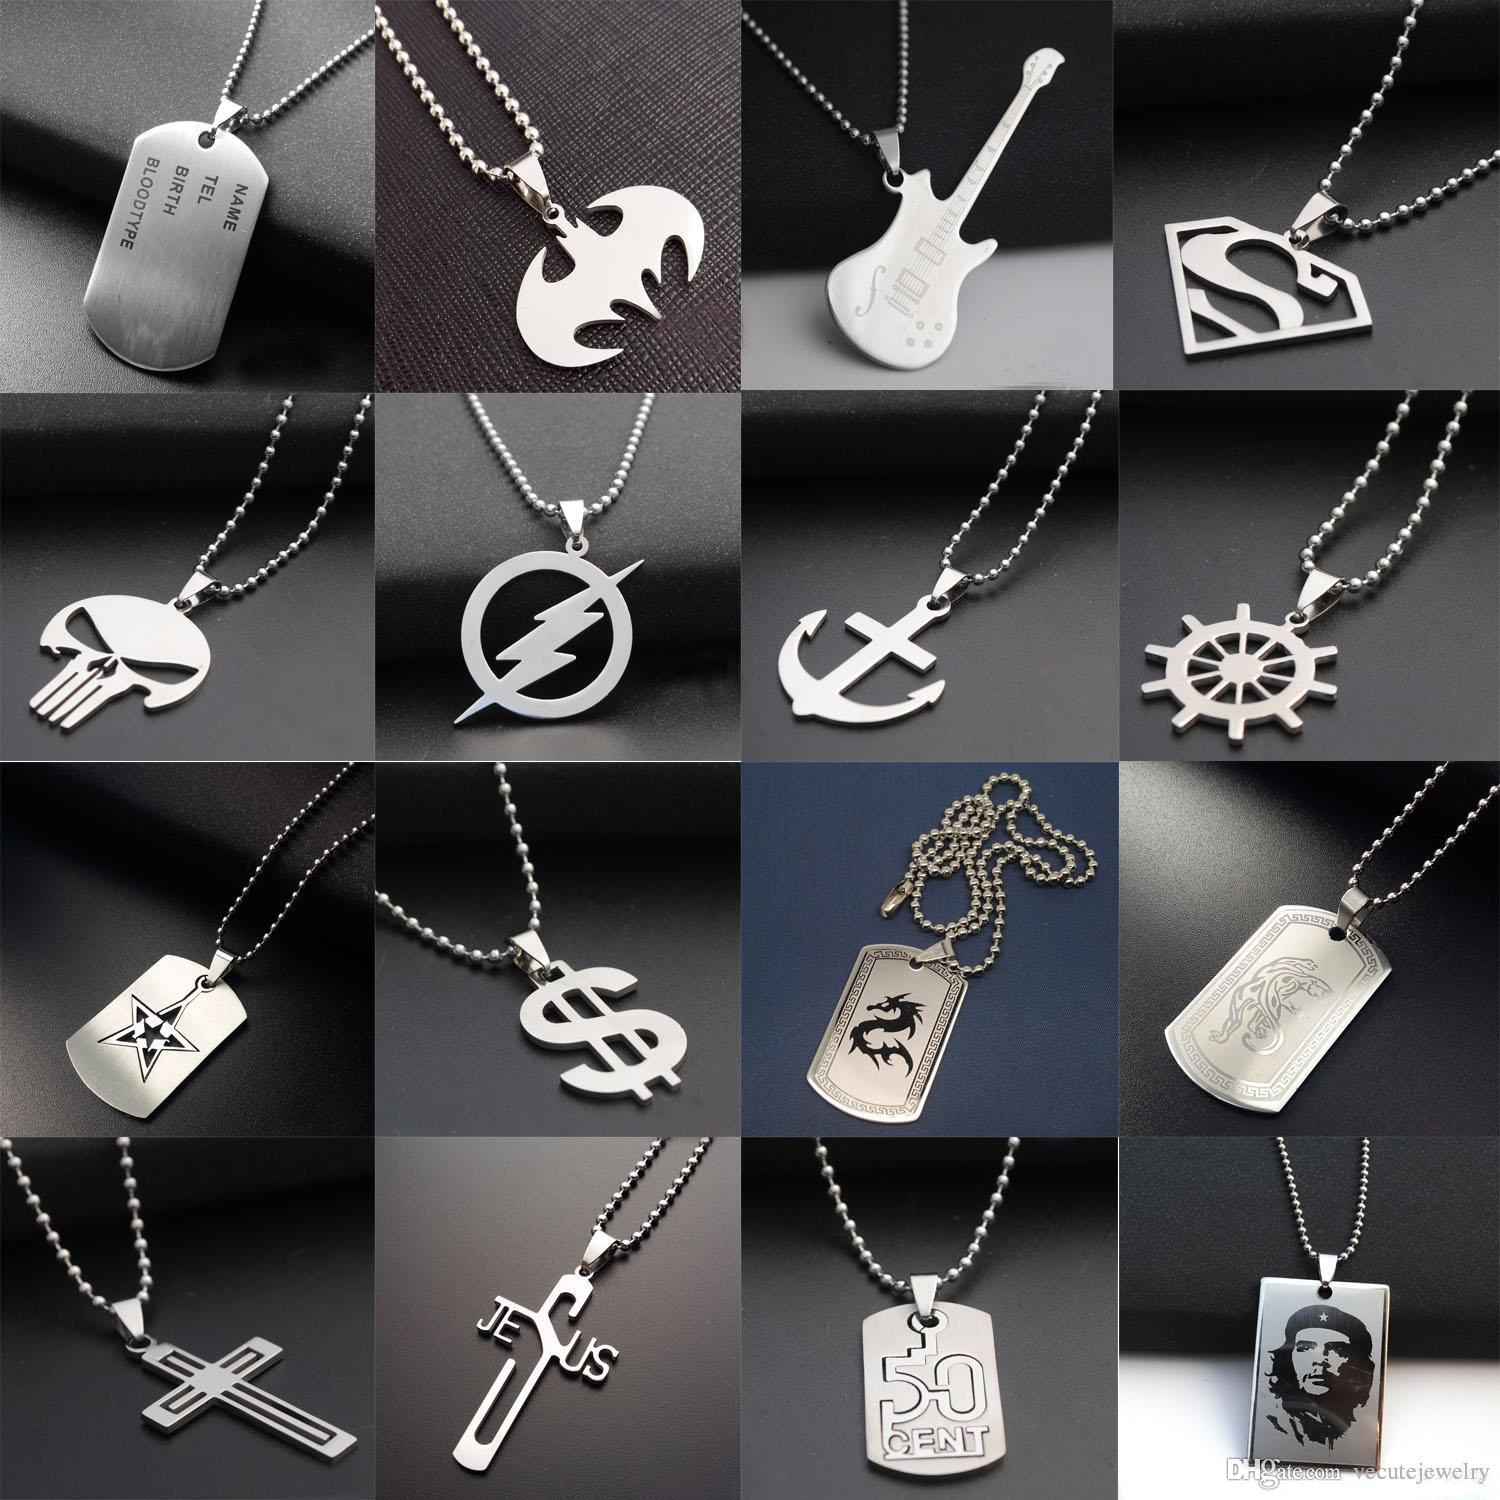 Wholesale fashion stainless steel 316l army dog tag men necklace wholesale fashion stainless steel 316l army dog tag men necklace cs games pendant necklaces charms jewelry for man superhero necklaces fans nice gift silver mozeypictures